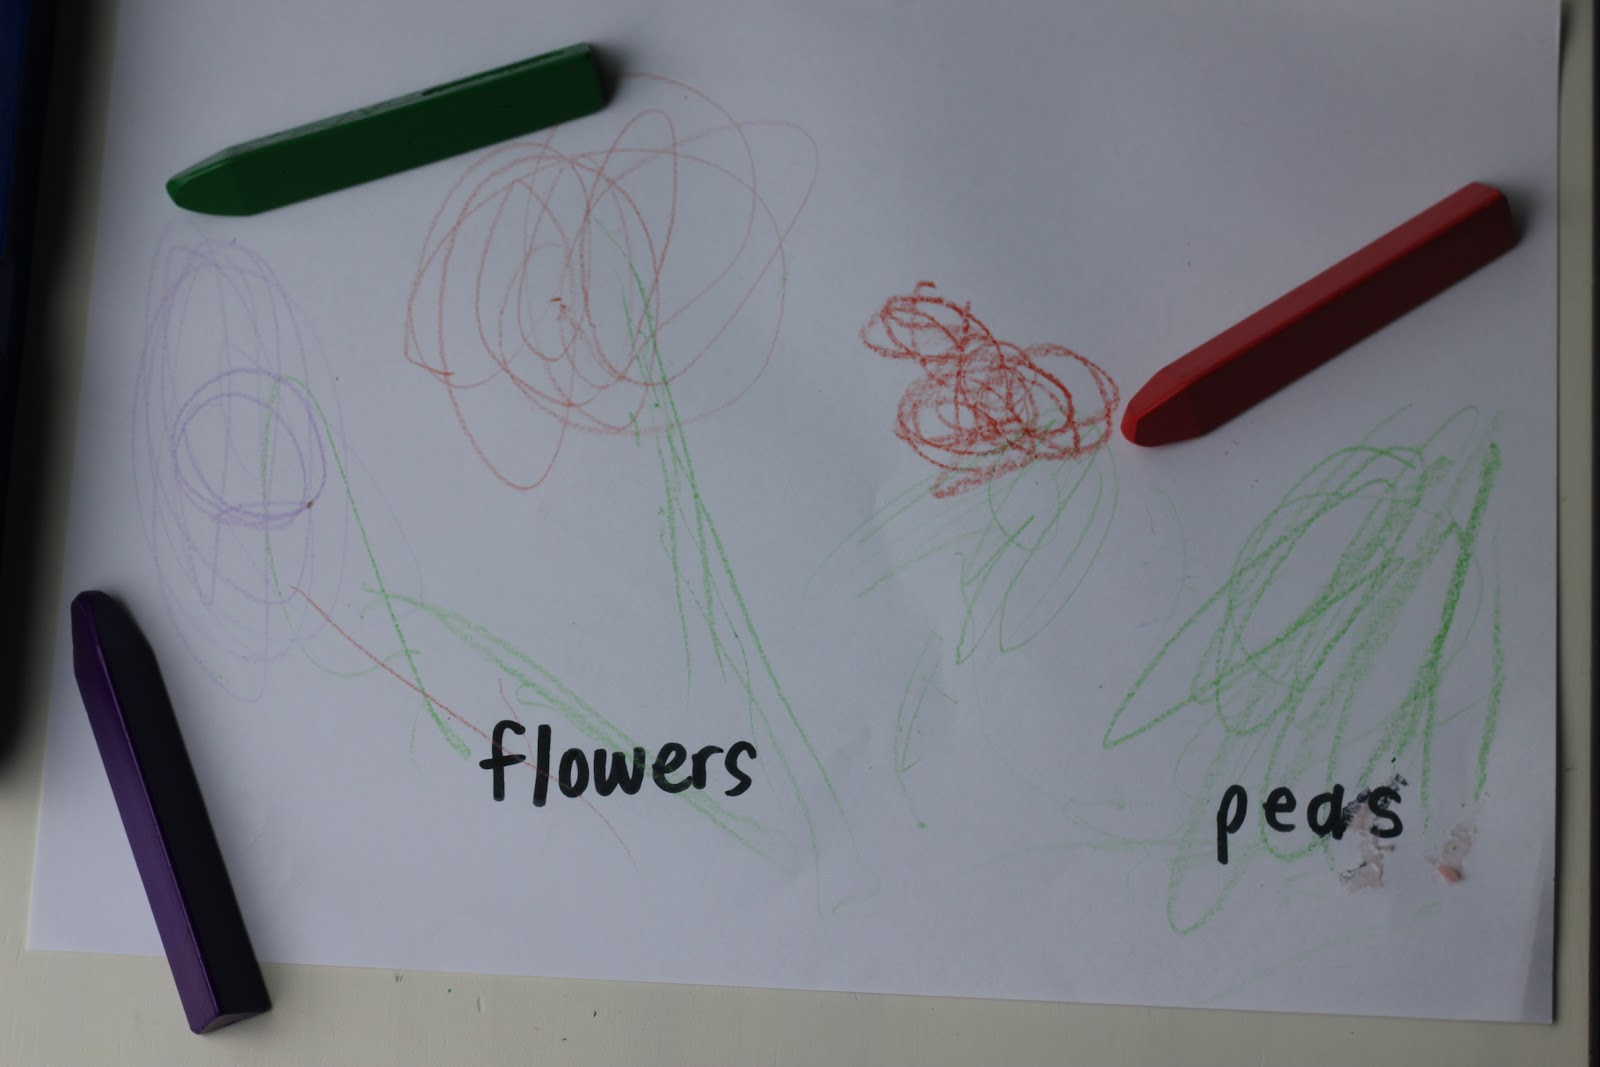 Vegetable garden kids drawing - Making An Organic Vegetable Garden With Children